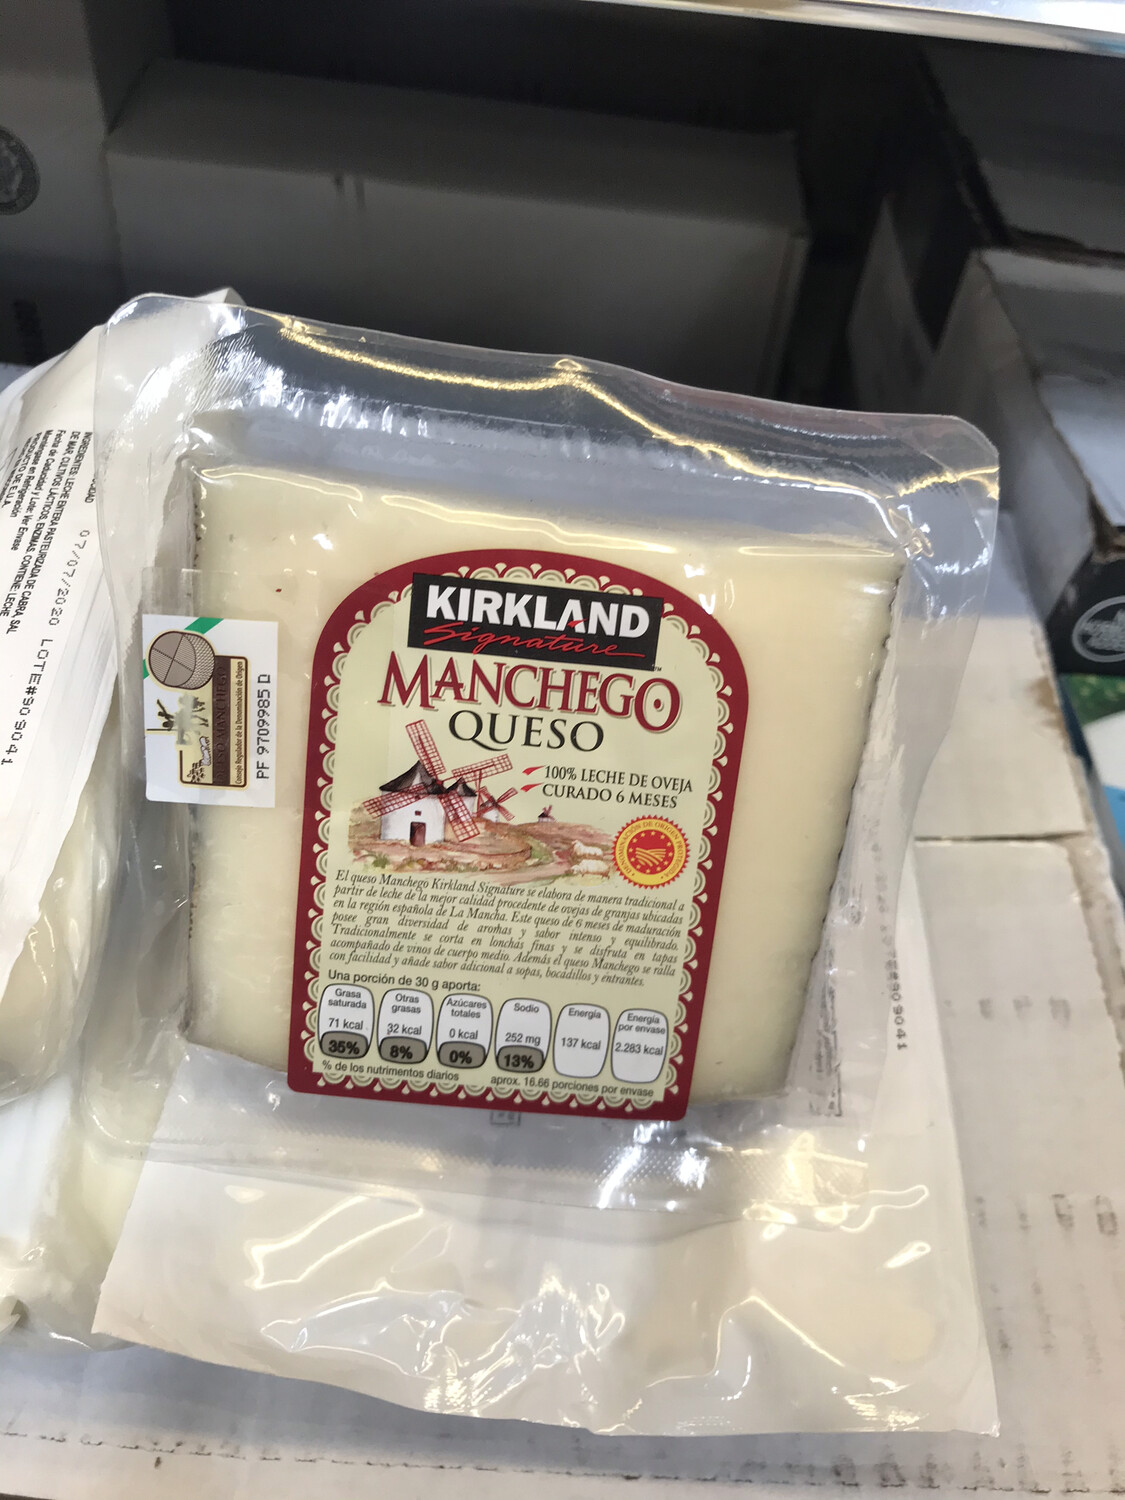 Kirkland Manchego Cheese (500g) lamb cheese 6 months cured